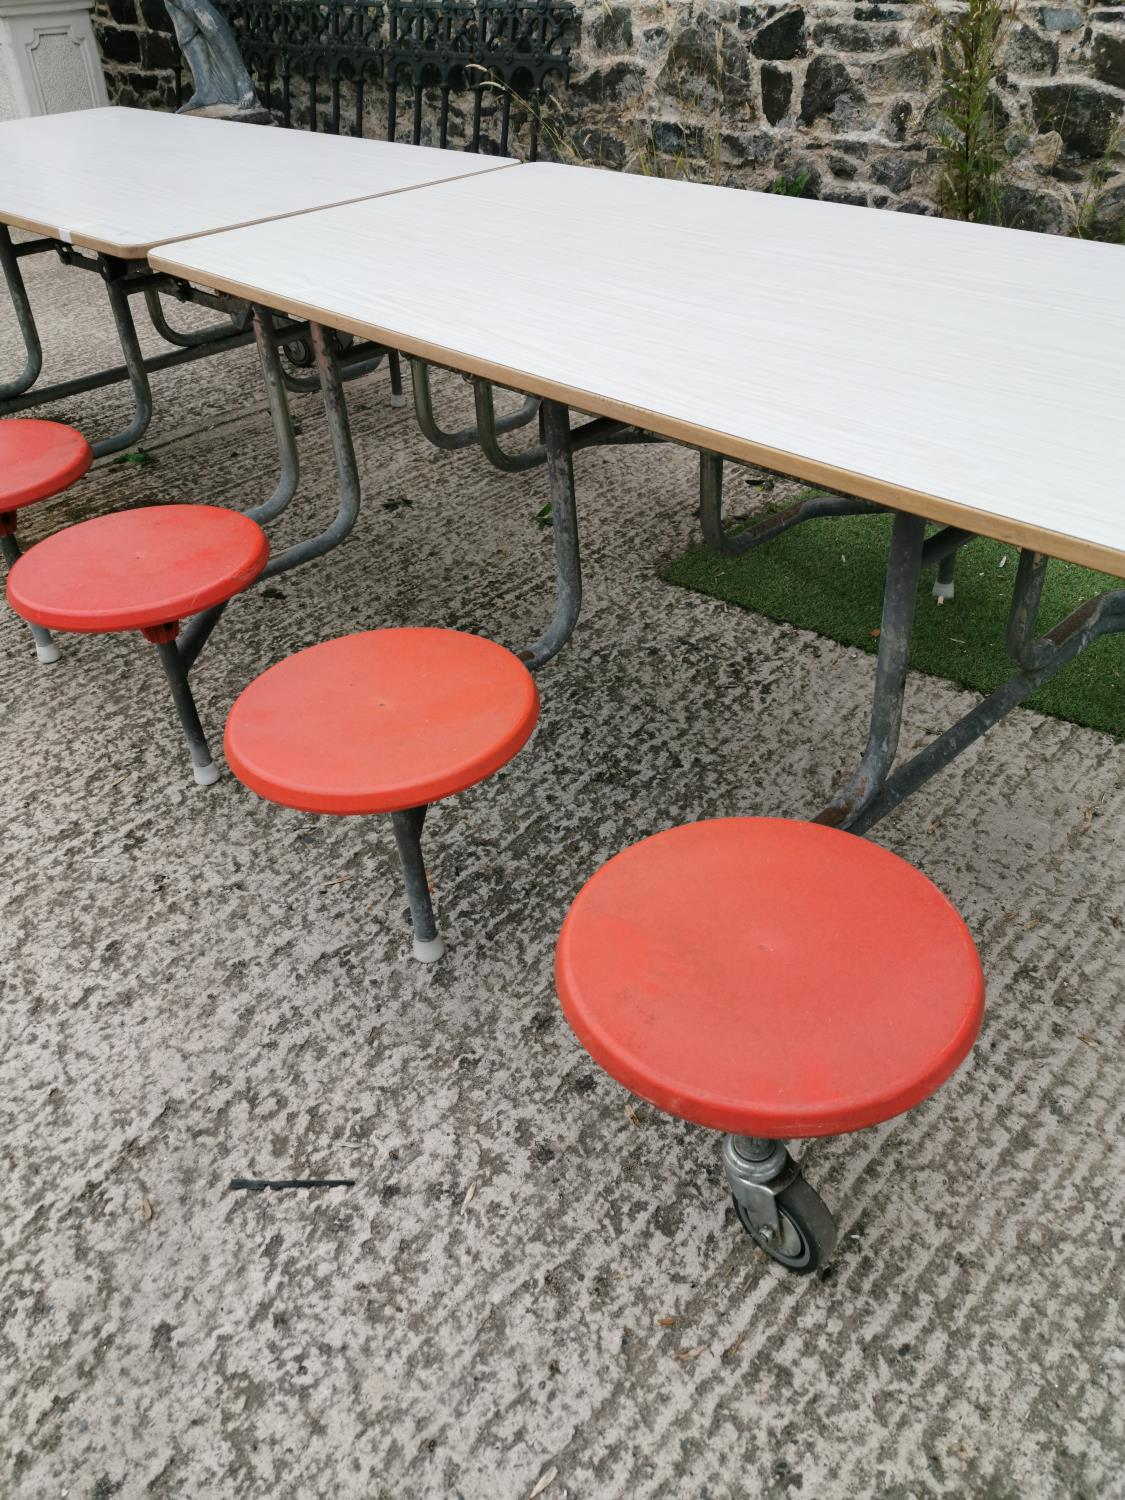 Retro folding garden table and seats. - Image 2 of 3